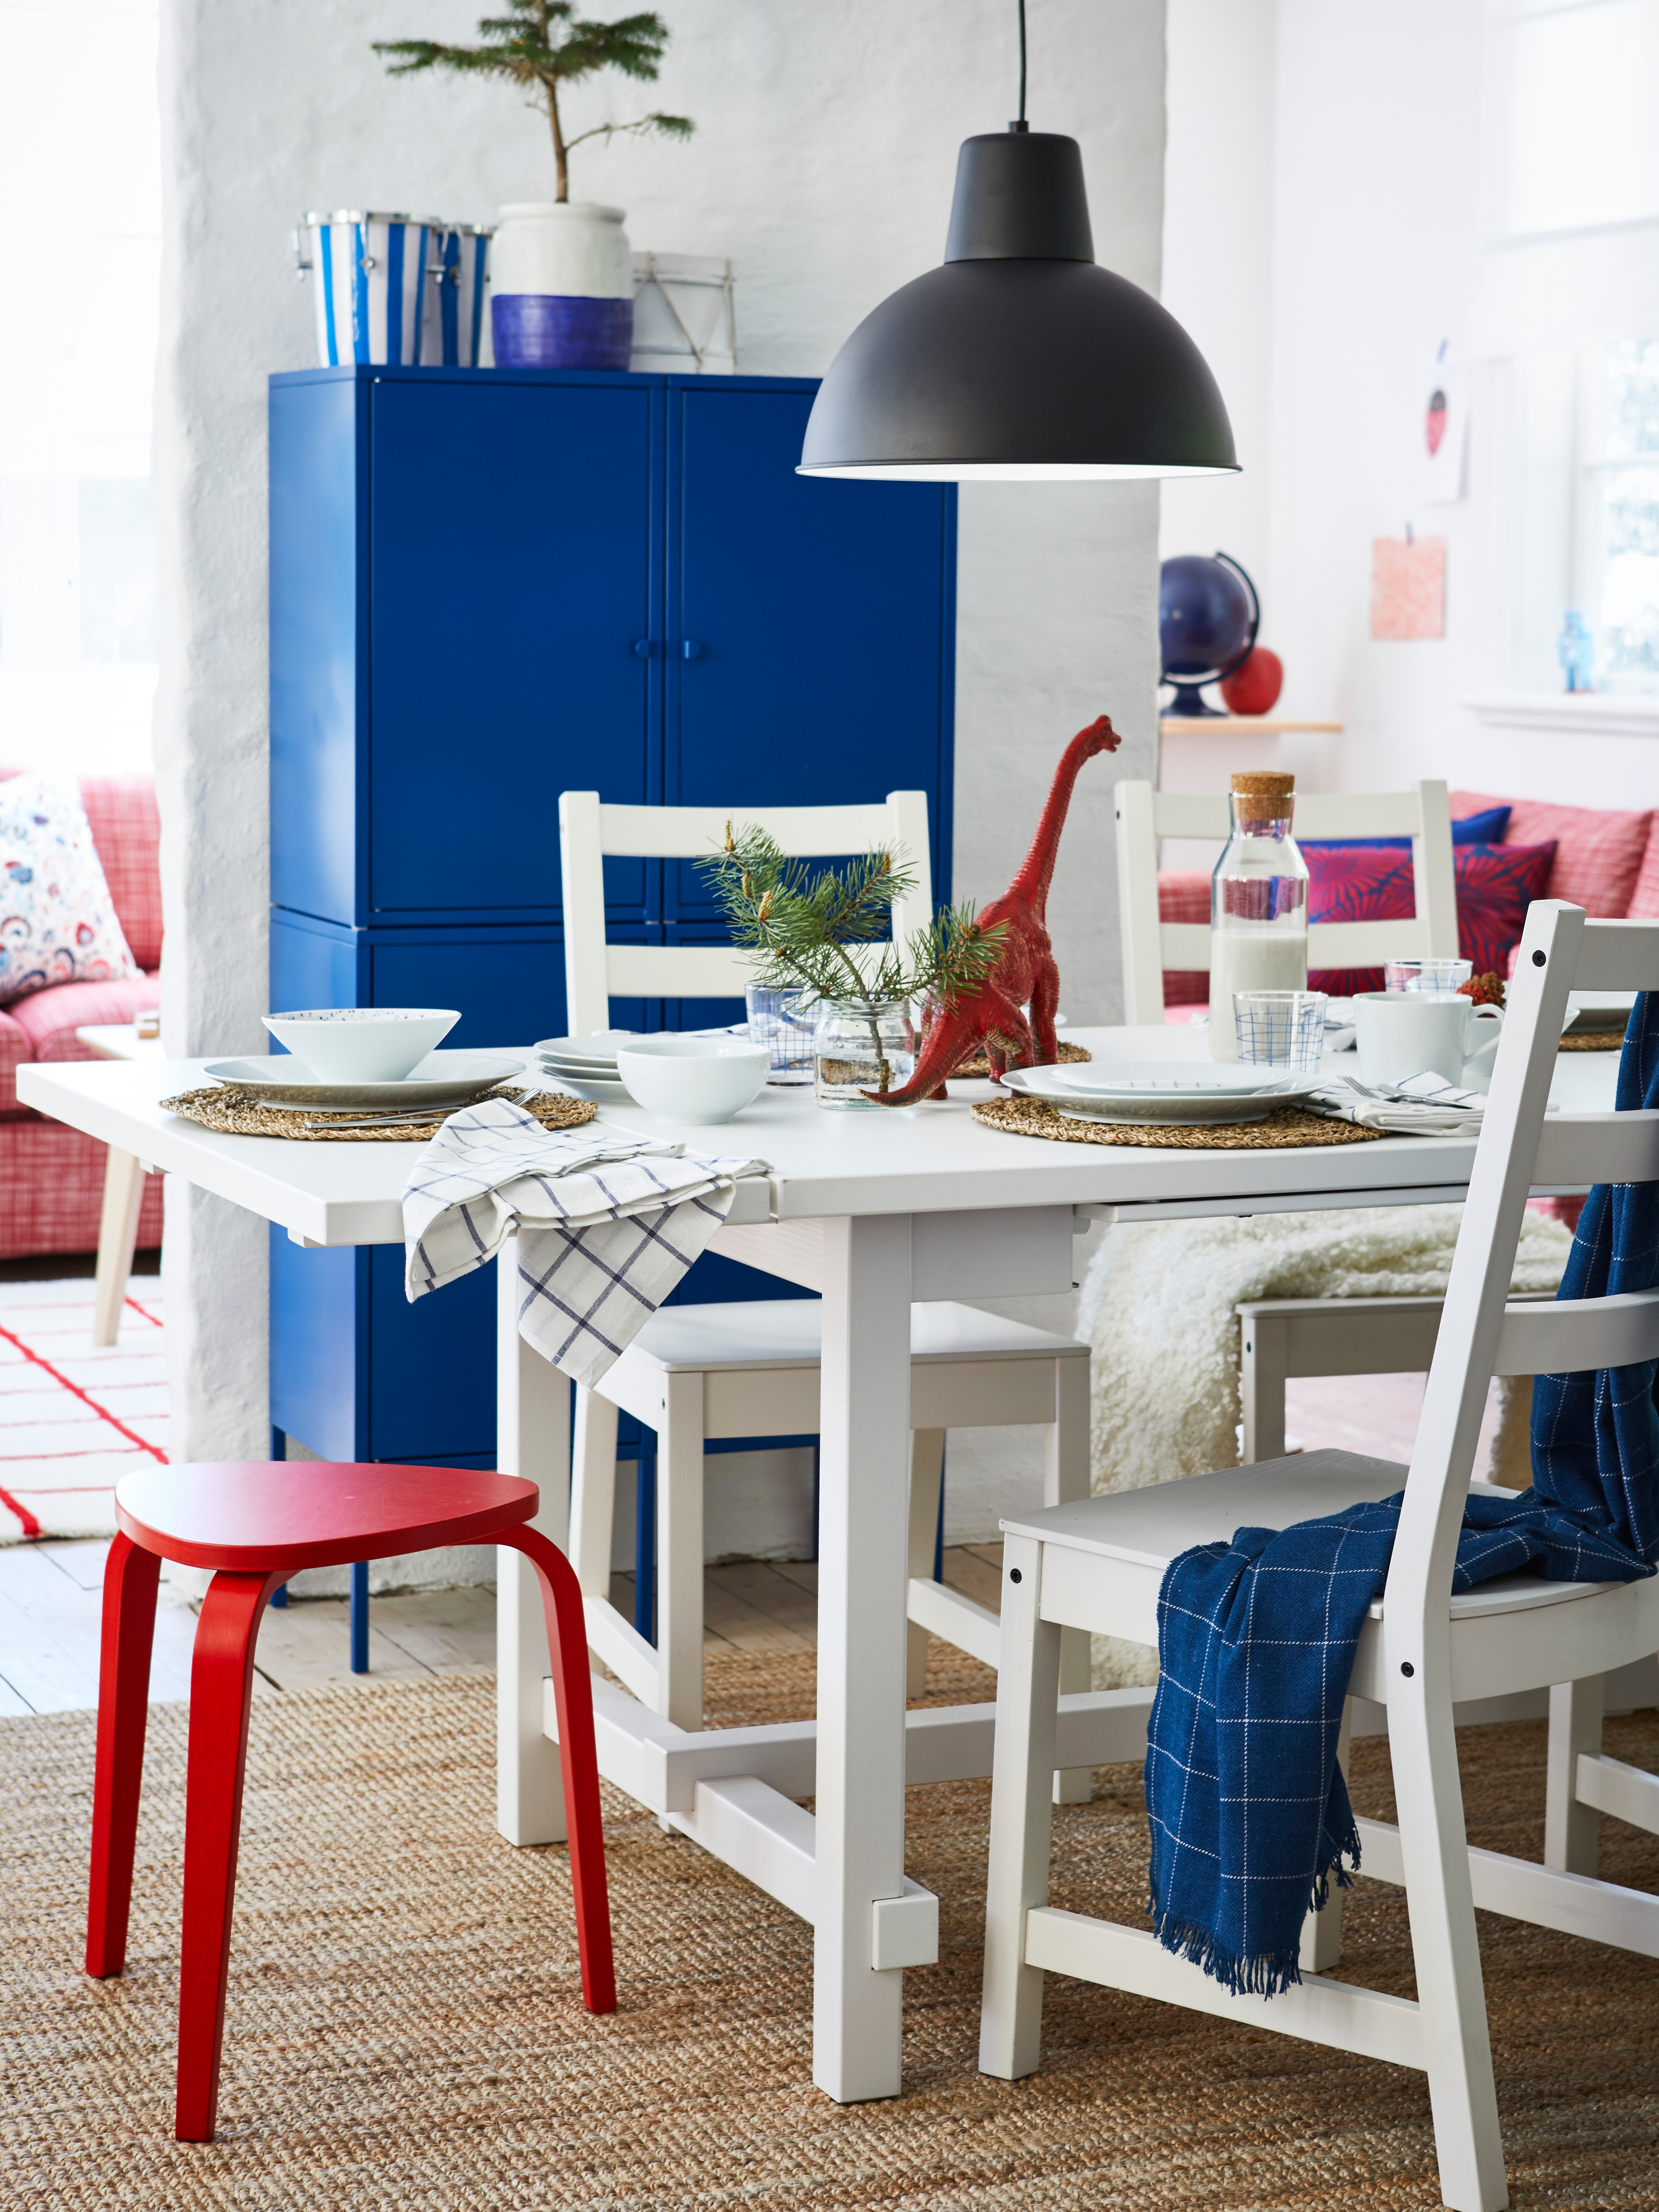 A NORDVIKEN extendable table in white, playfully set for a meal, with chairs and a blue storage unit in the background.